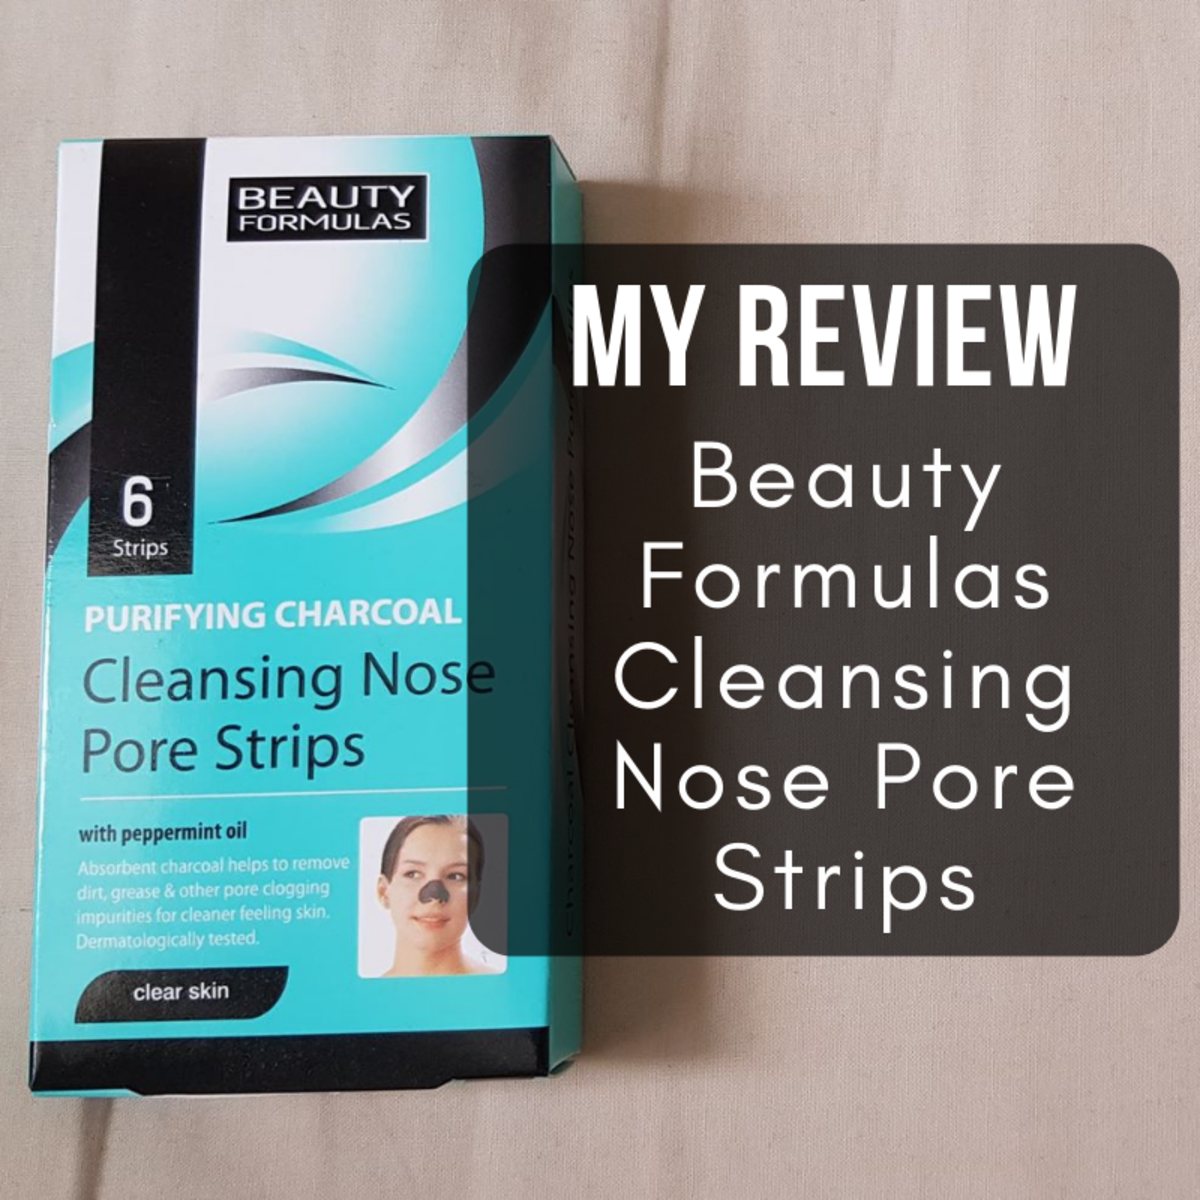 My review of Beauty Formulas Purifying Charcoal Cleansing Nose Pore Strips (with peppermint oil)